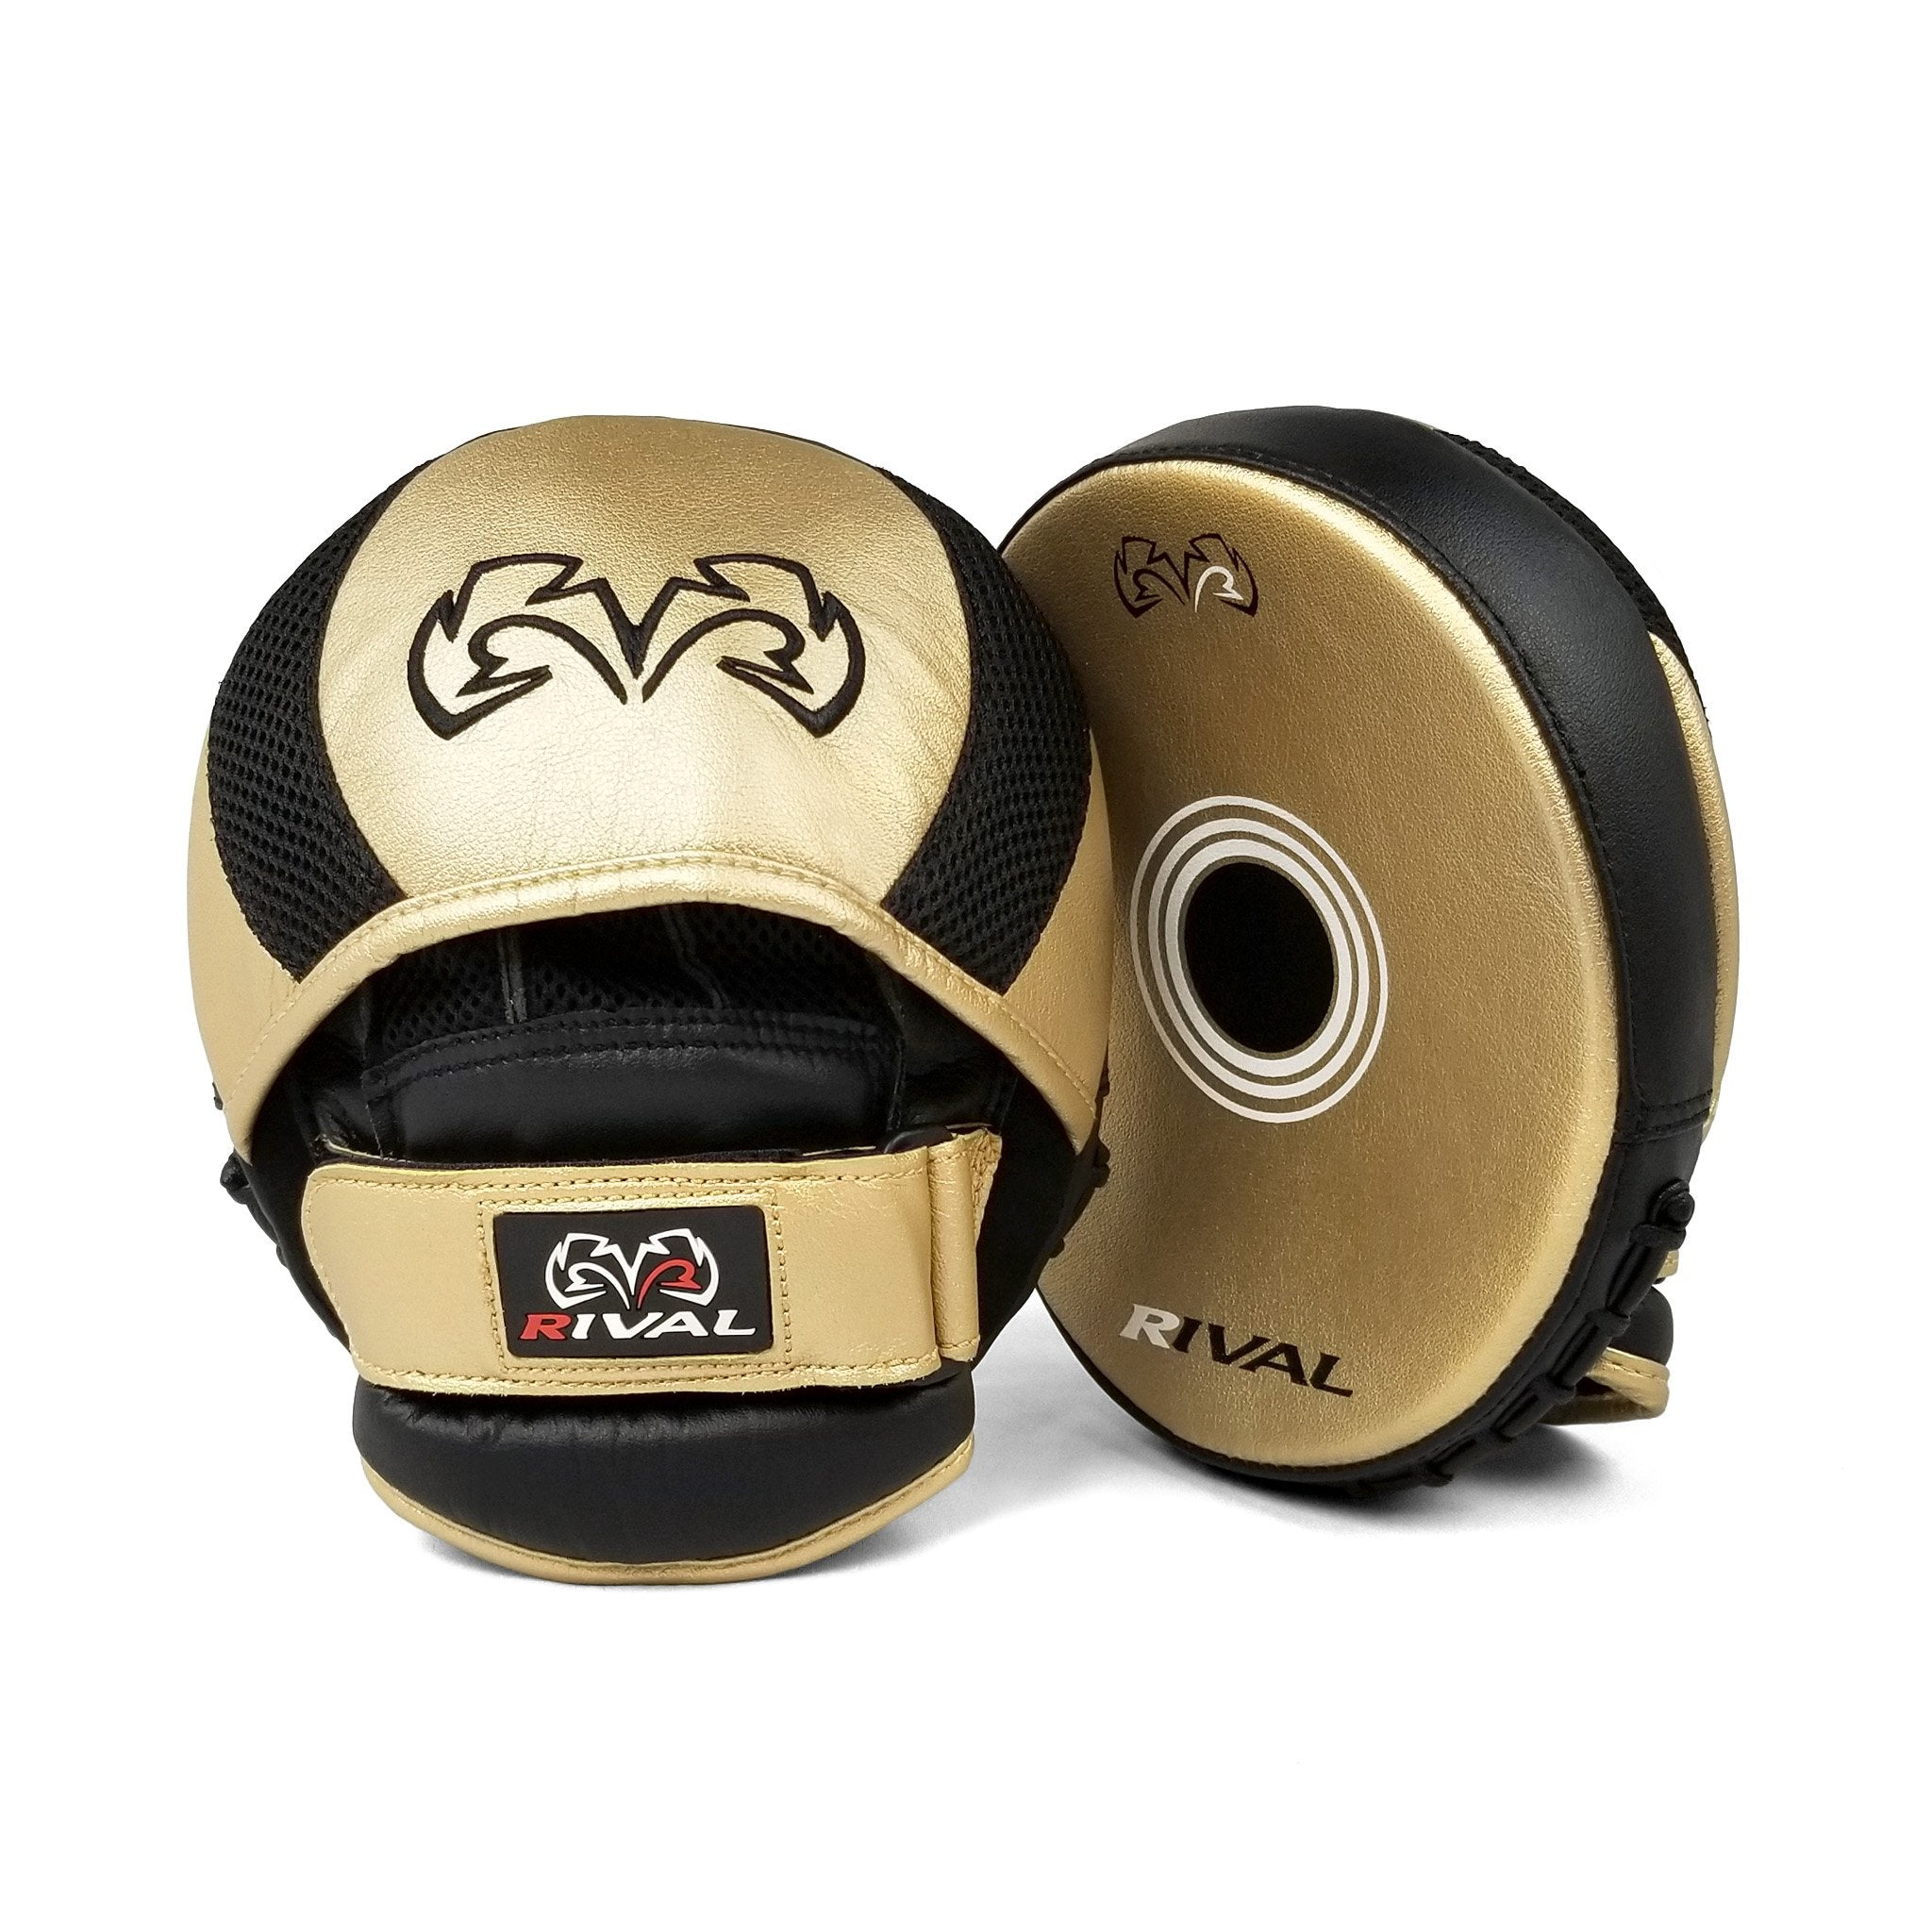 RIVAL FOCUS MITTS RPM11 BLACK/GOLD